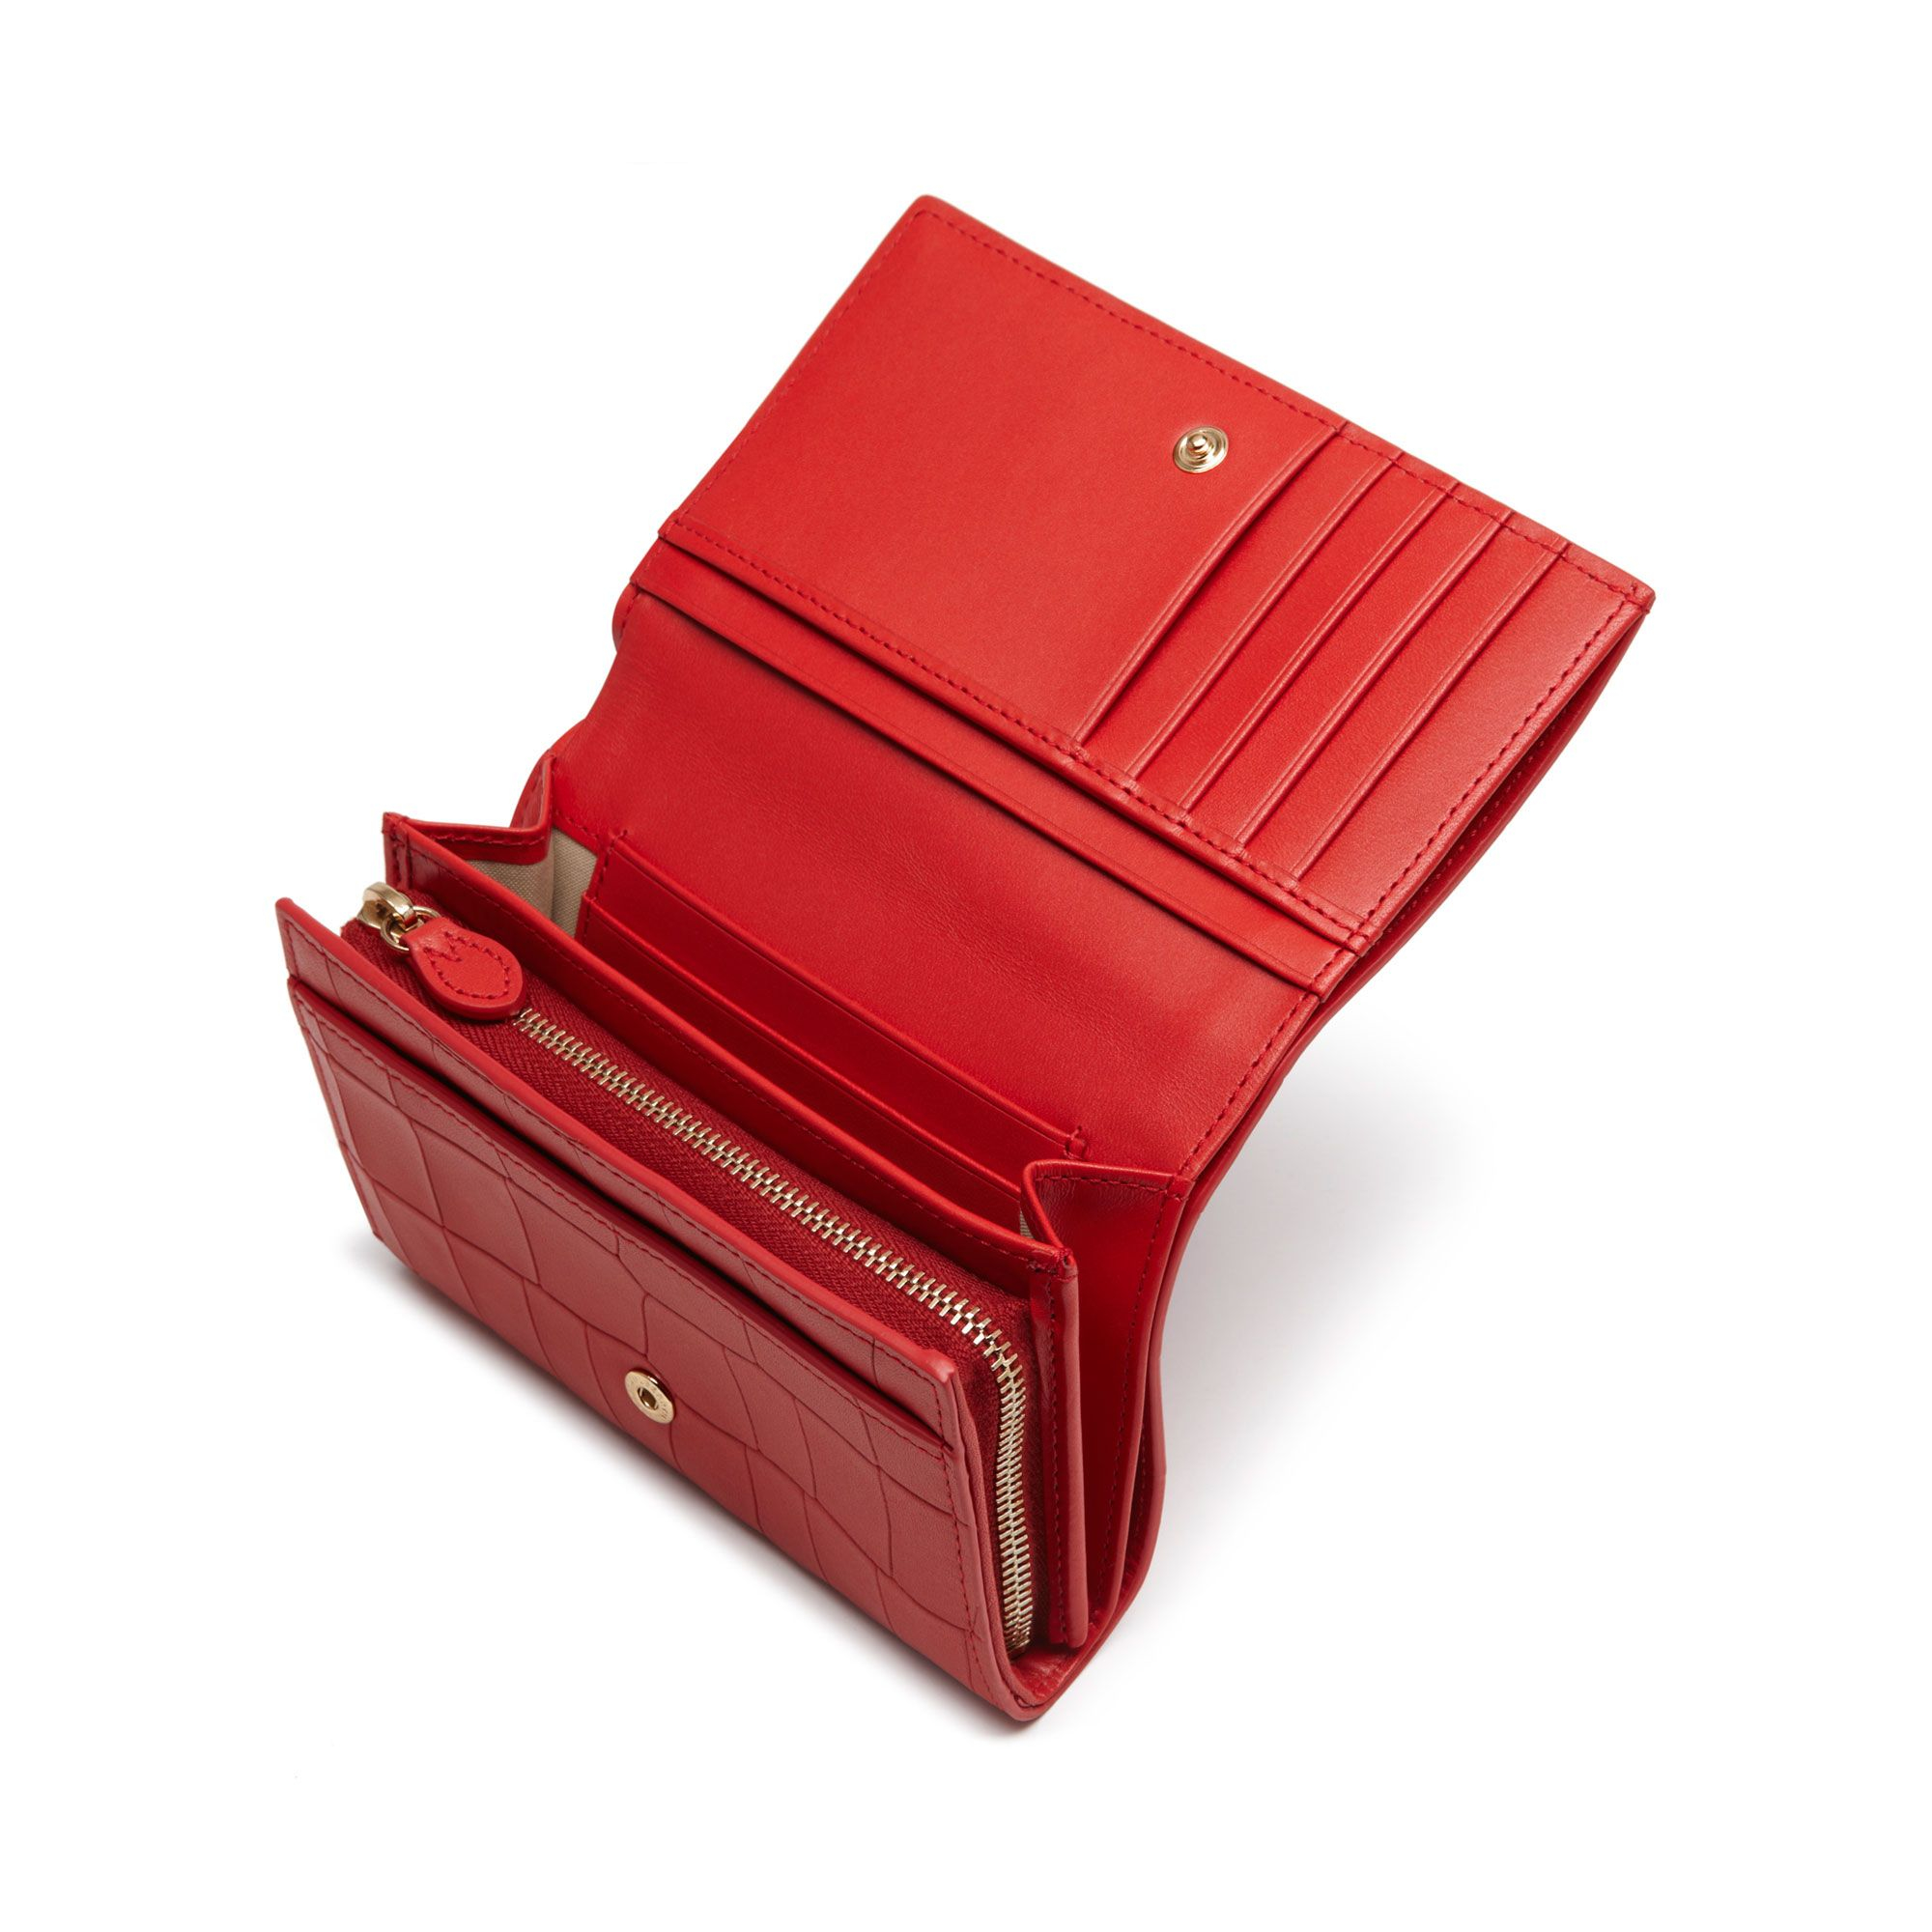 Lyst - Mulberry French Purse in Red 81918da17276a